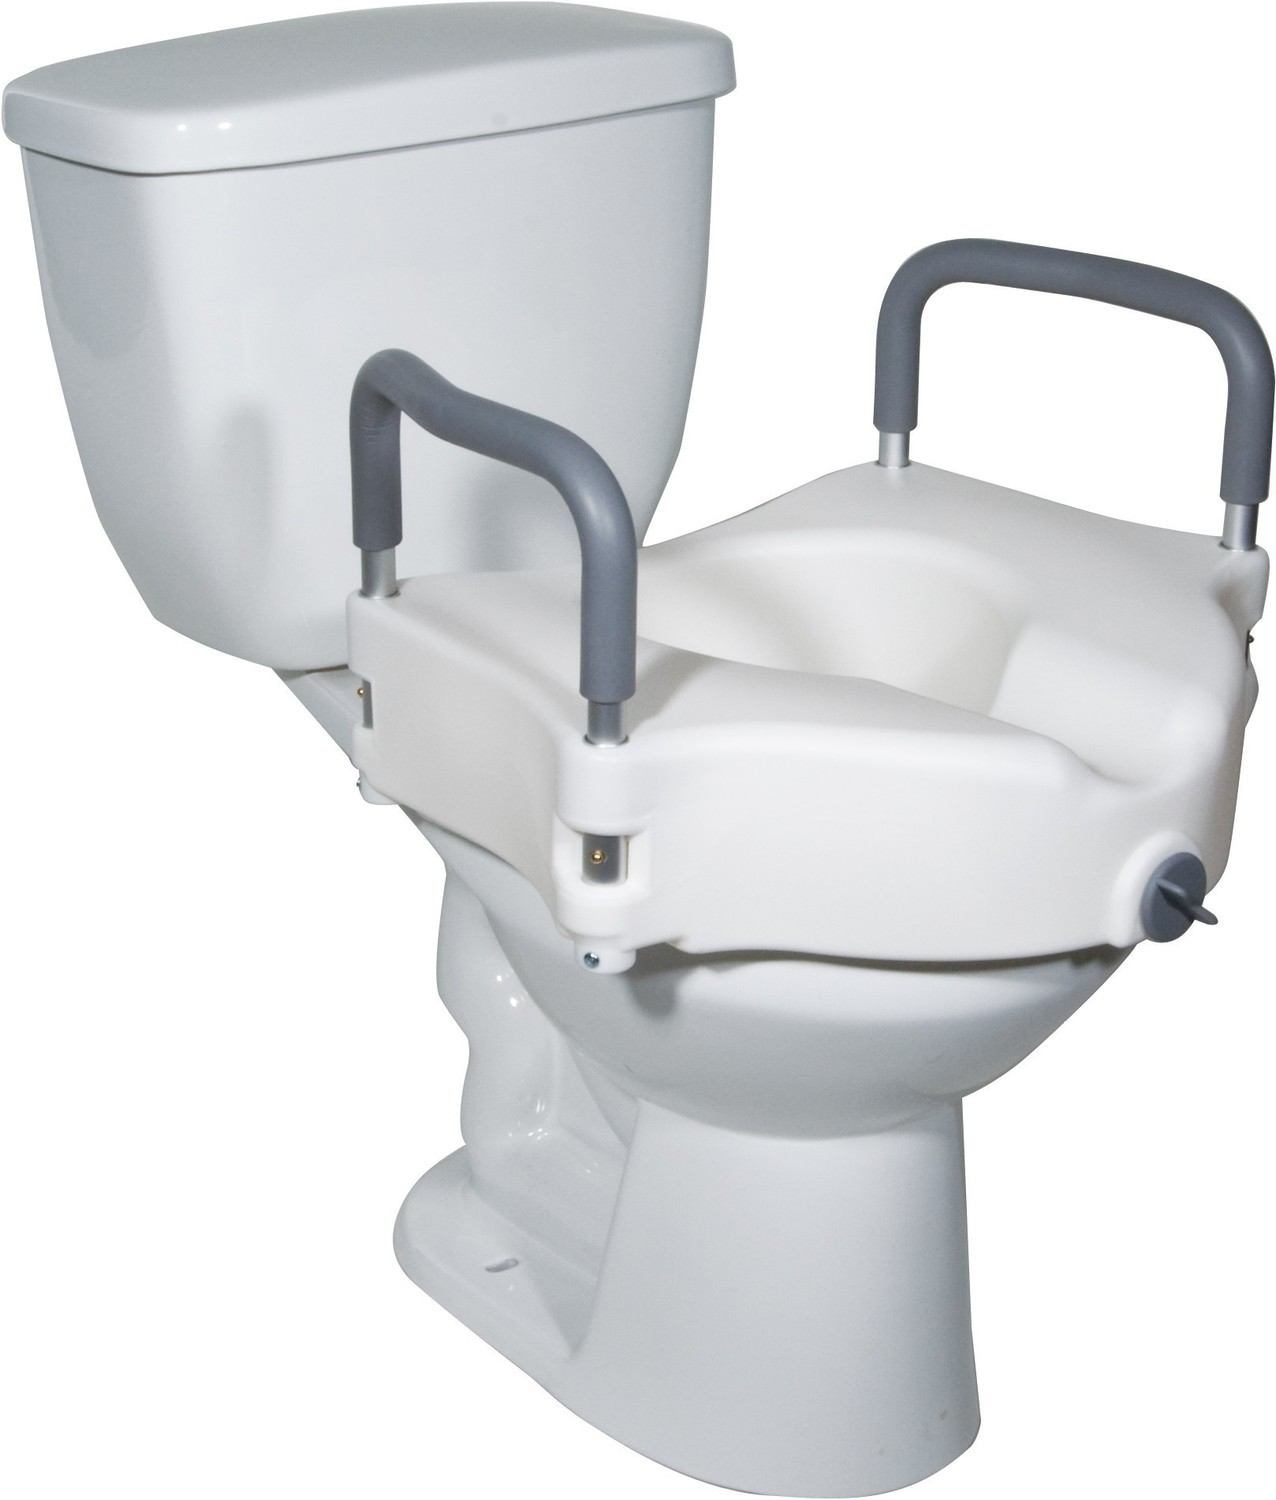 Elevated Raised Standard Toilet Seat with Removable Padded Arms